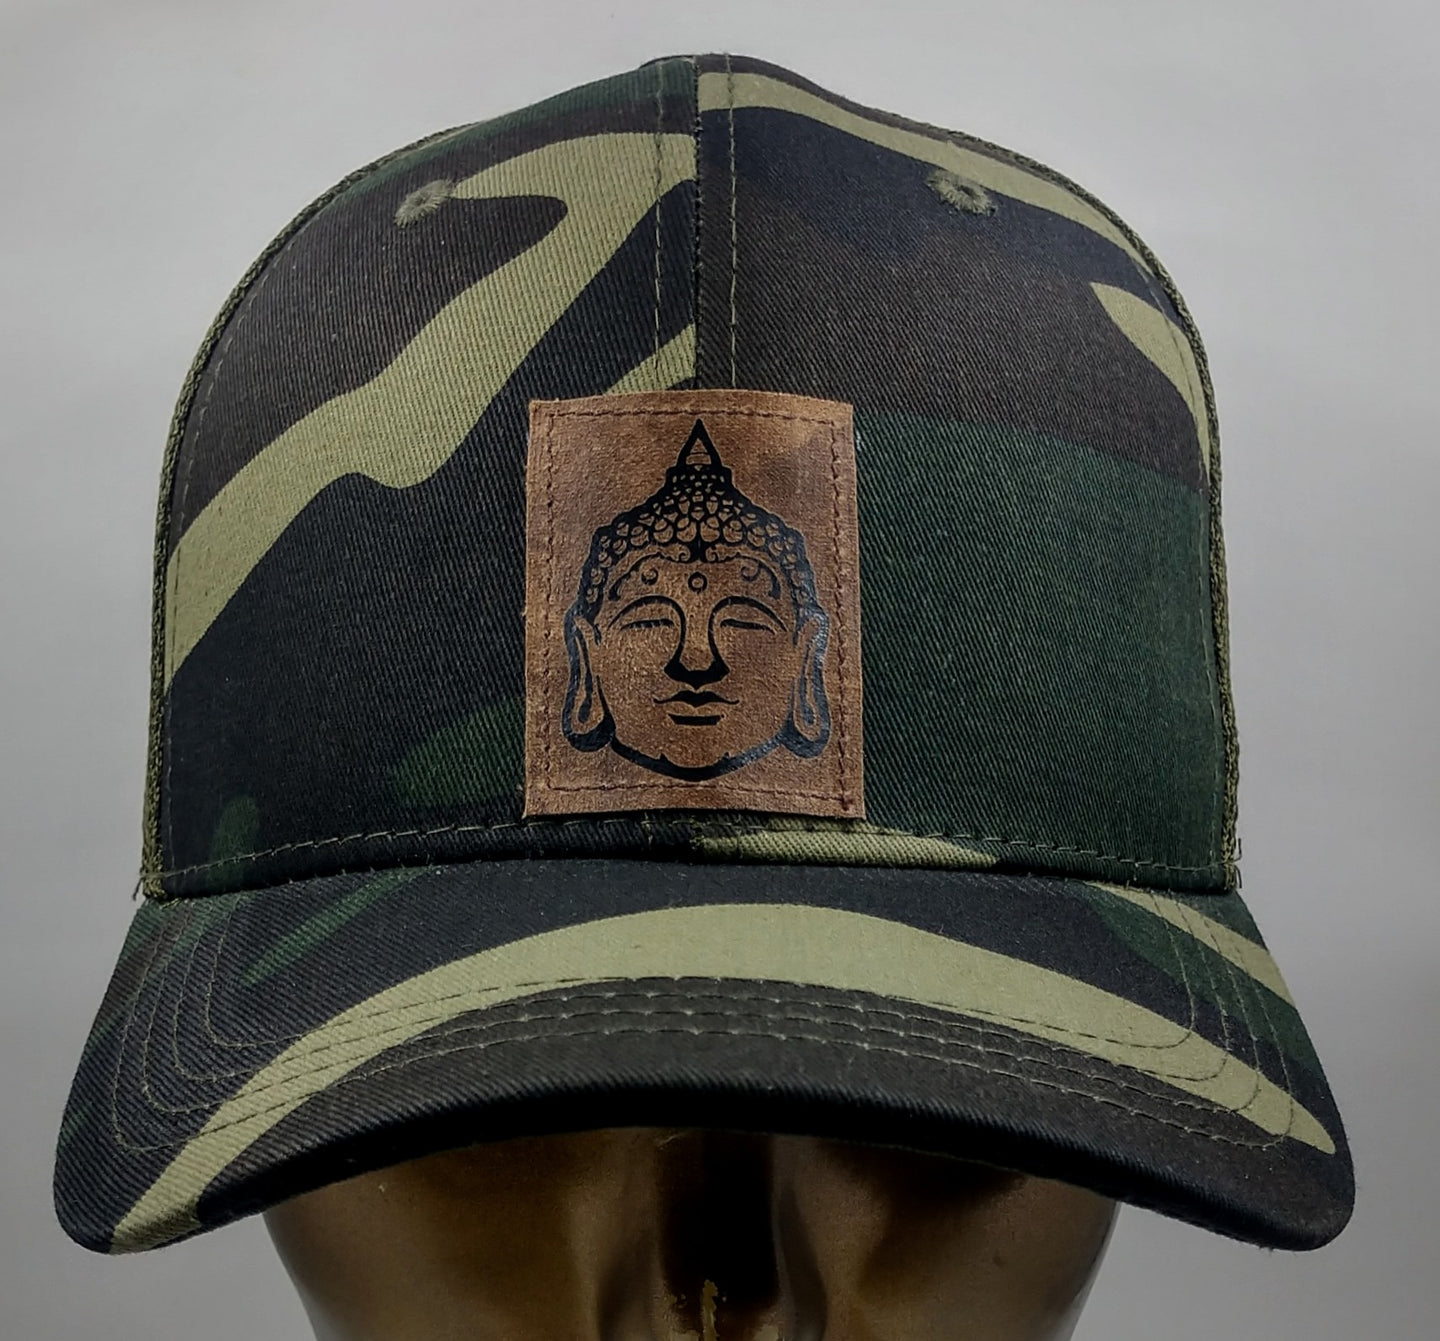 Buddha gear Buddha Lids Buddha Wear Hat Because why not rock your Buddha while communing with nature in your Camo snapback with handmade Buddha patch